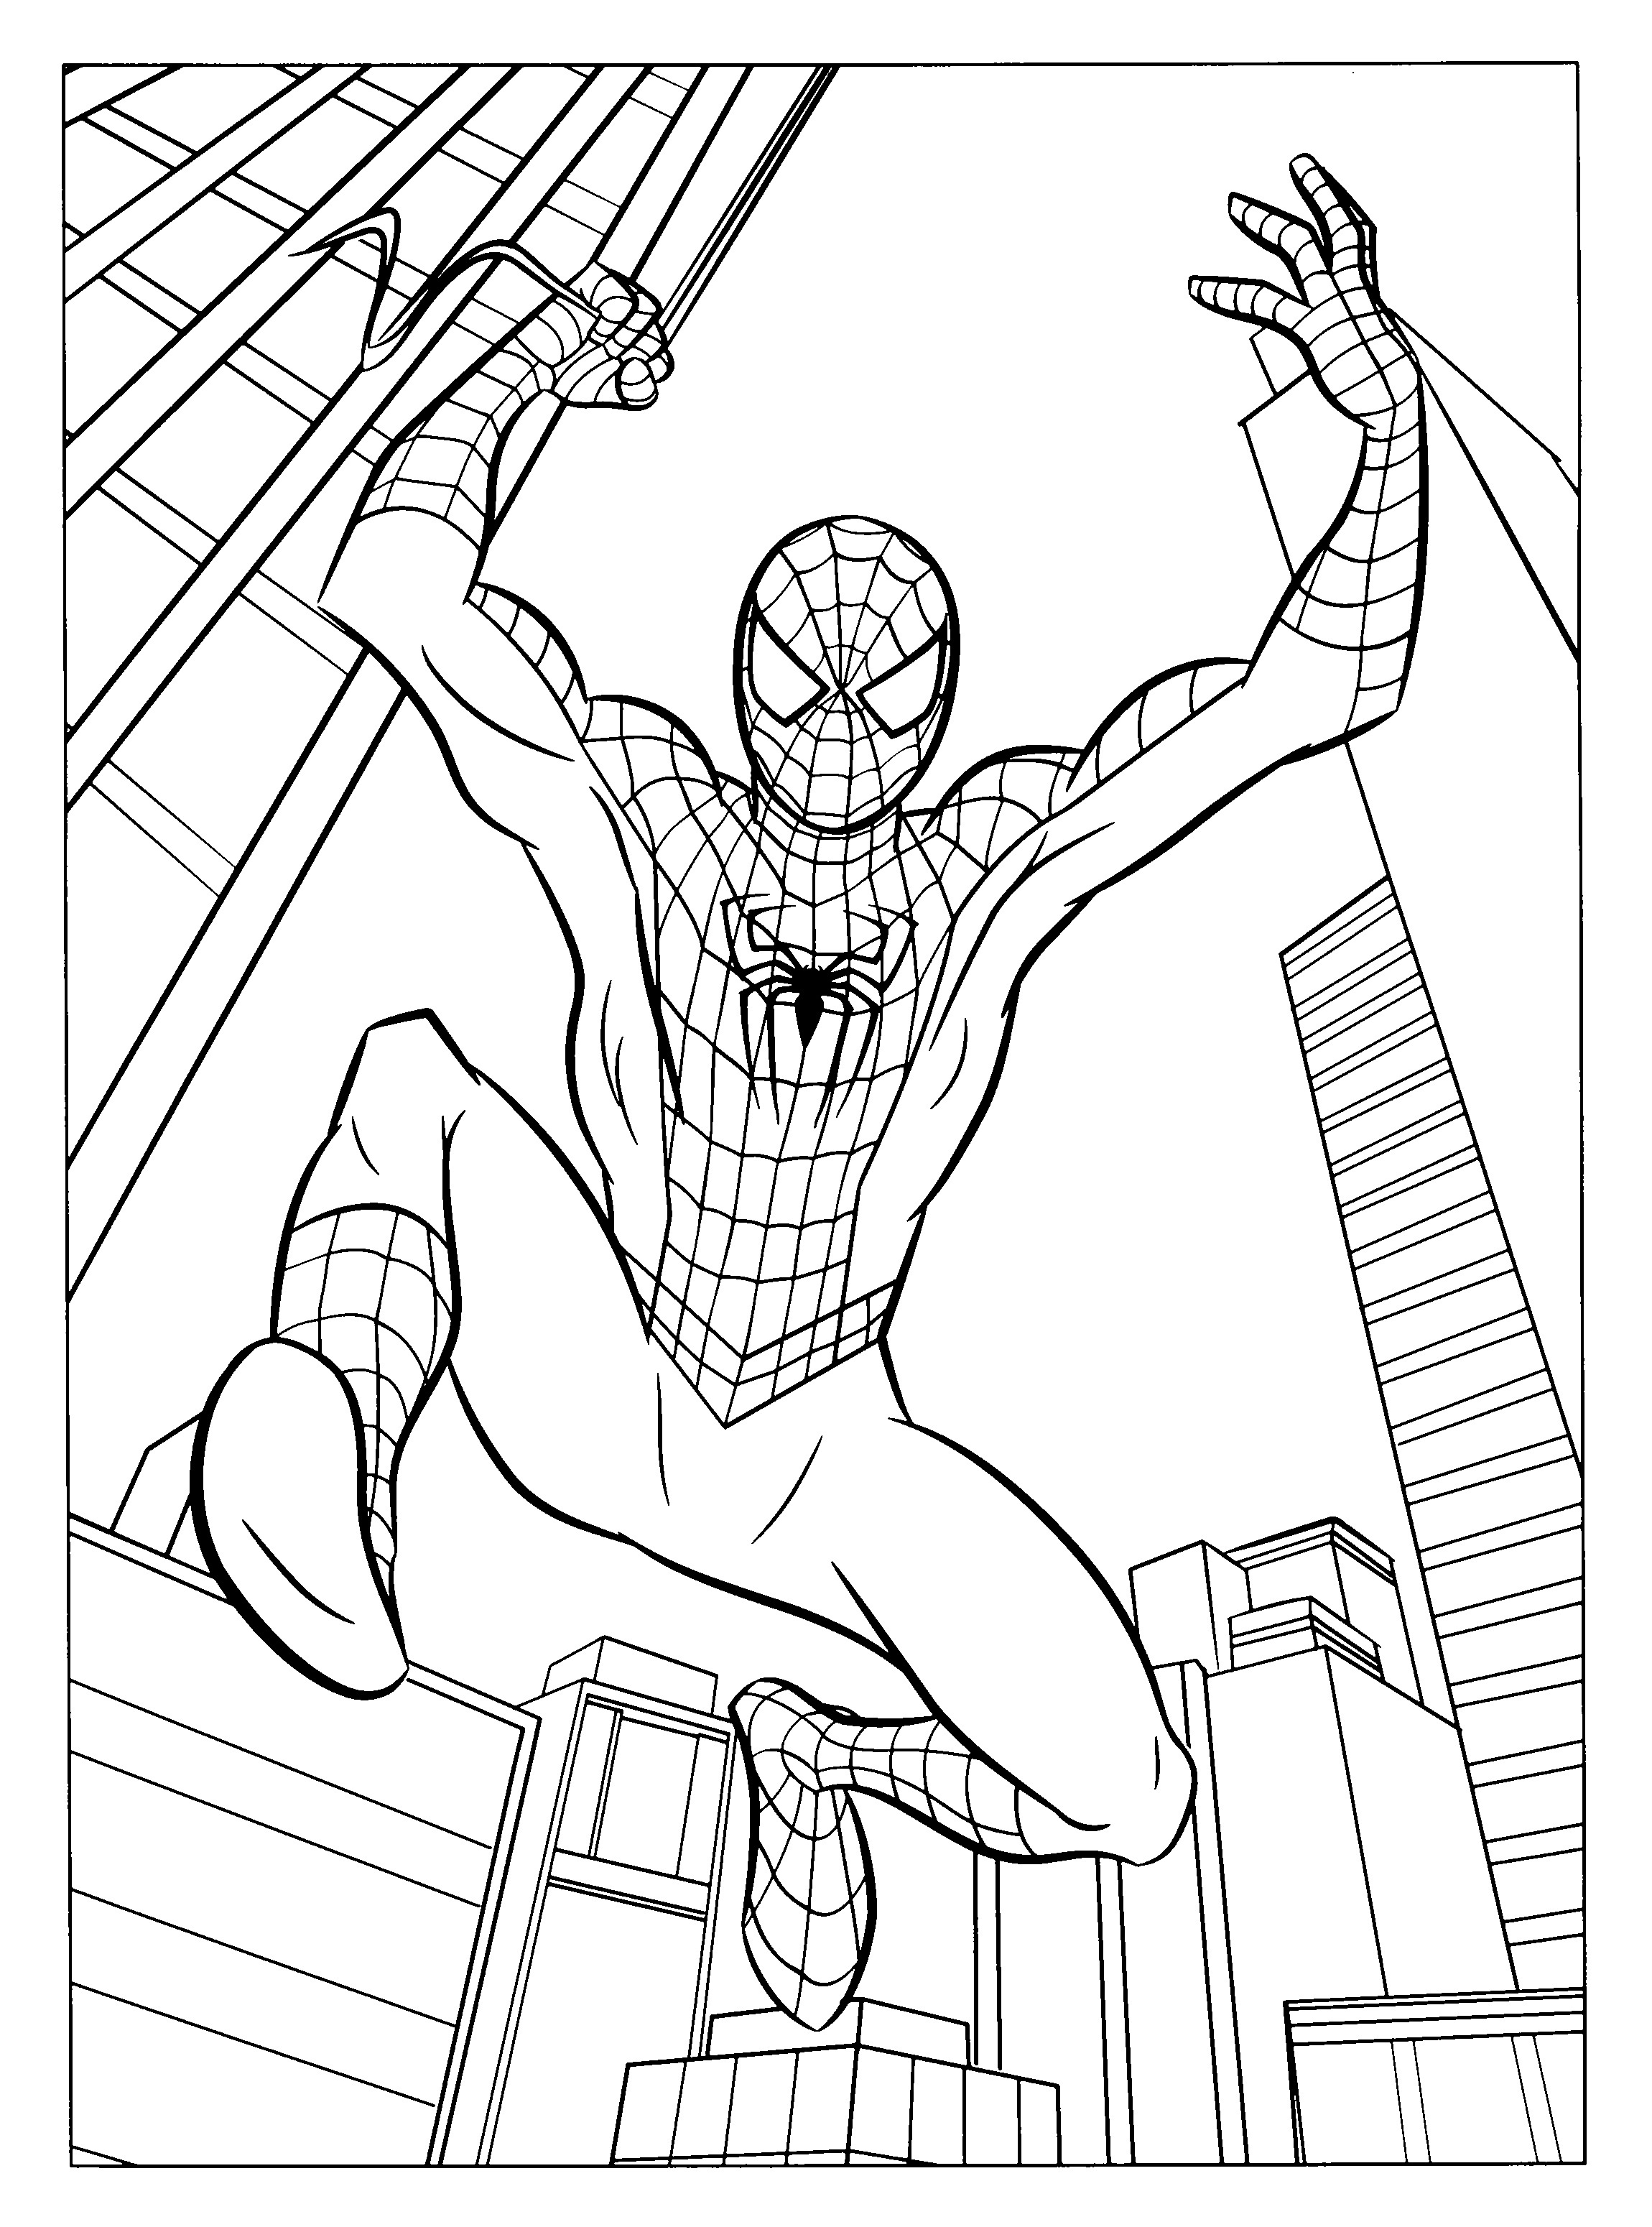 Spiderman 3 coloring pages - Coloring pages of spiderman